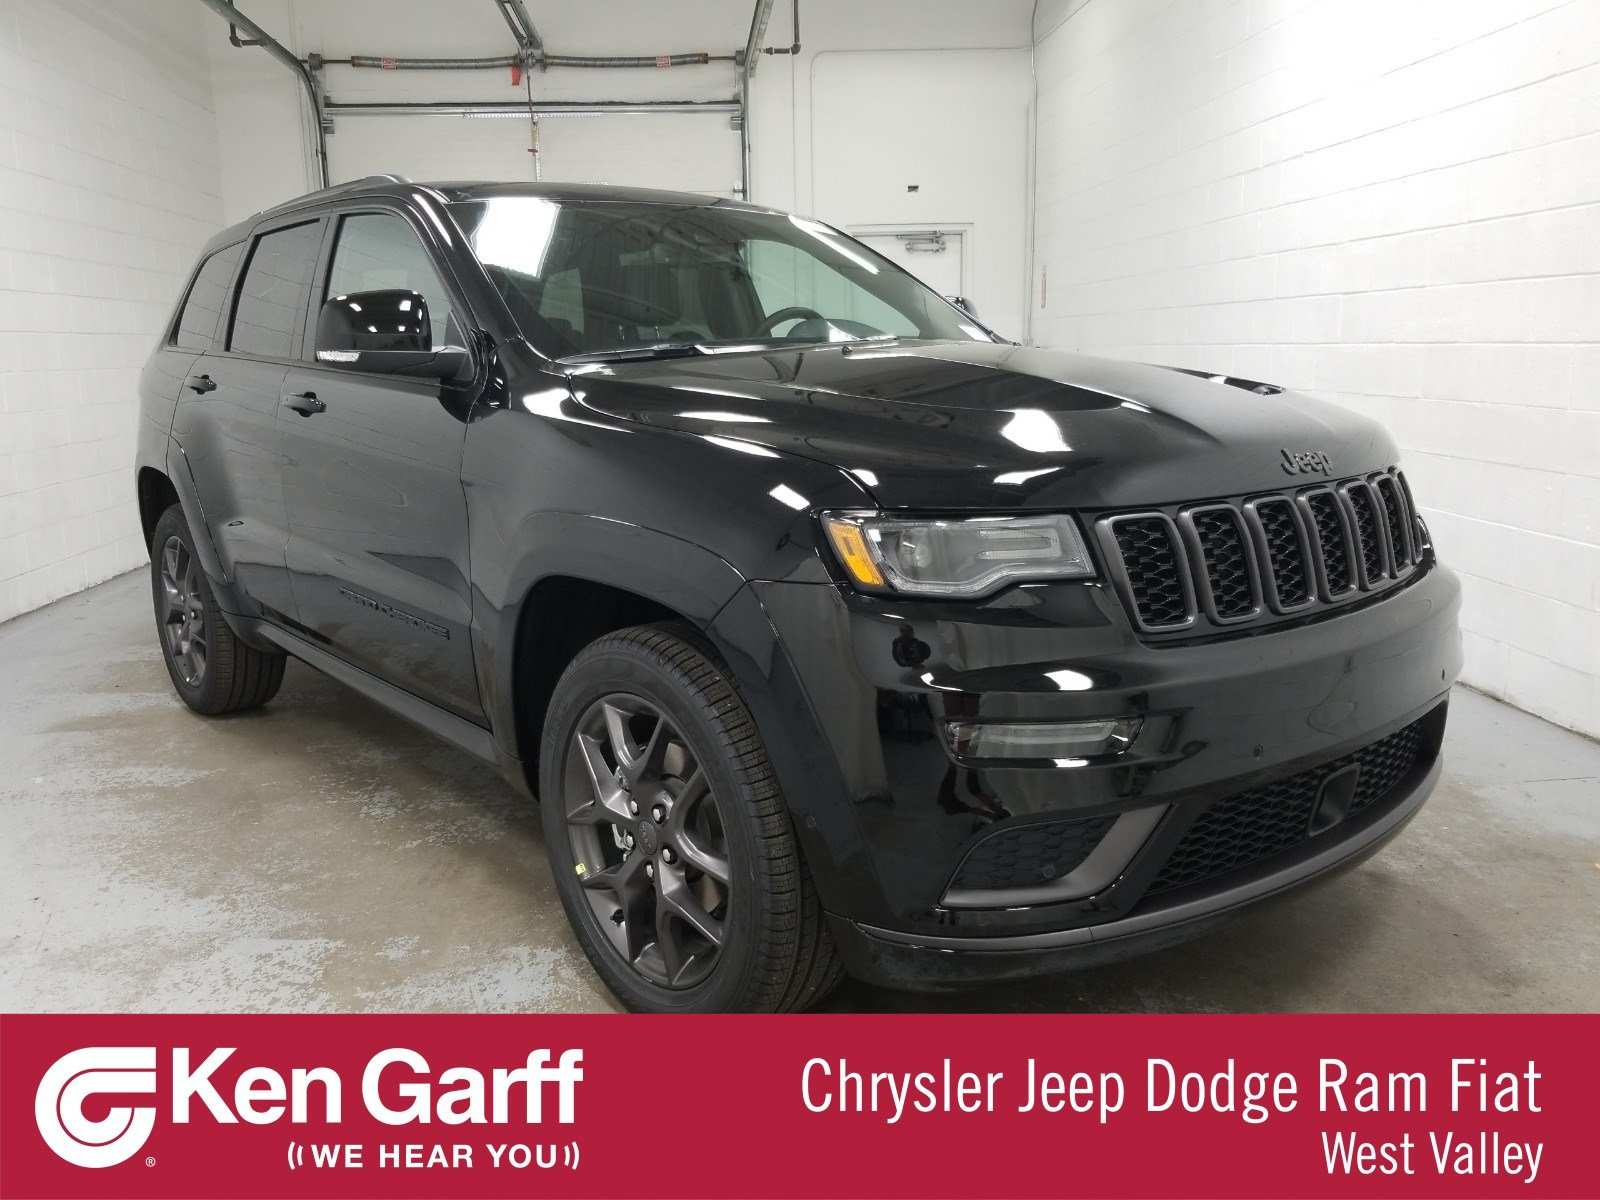 36 All New Jeep Cherokee Limited 2020 Price